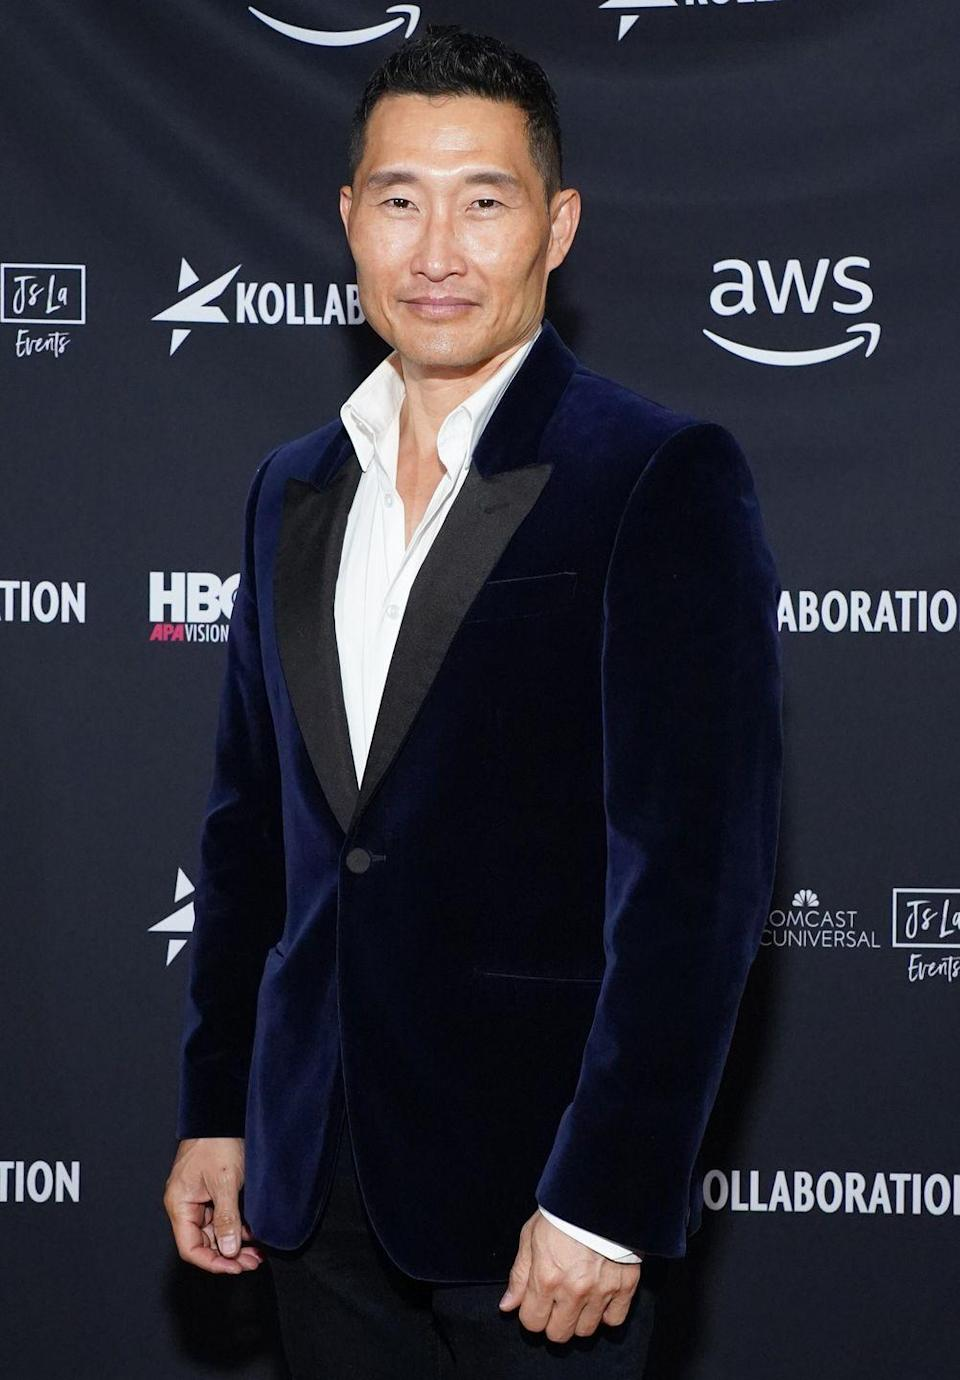 <p>Kim stayed in Hawaii and joined the cast of <em>Hawaii Five-0</em> as Chin Ho Kelly for seven seasons, and is now working on <em>The Good Doctor </em>as a producer and as the hospital's chief of surgery Dr. Jackson Han.</p>